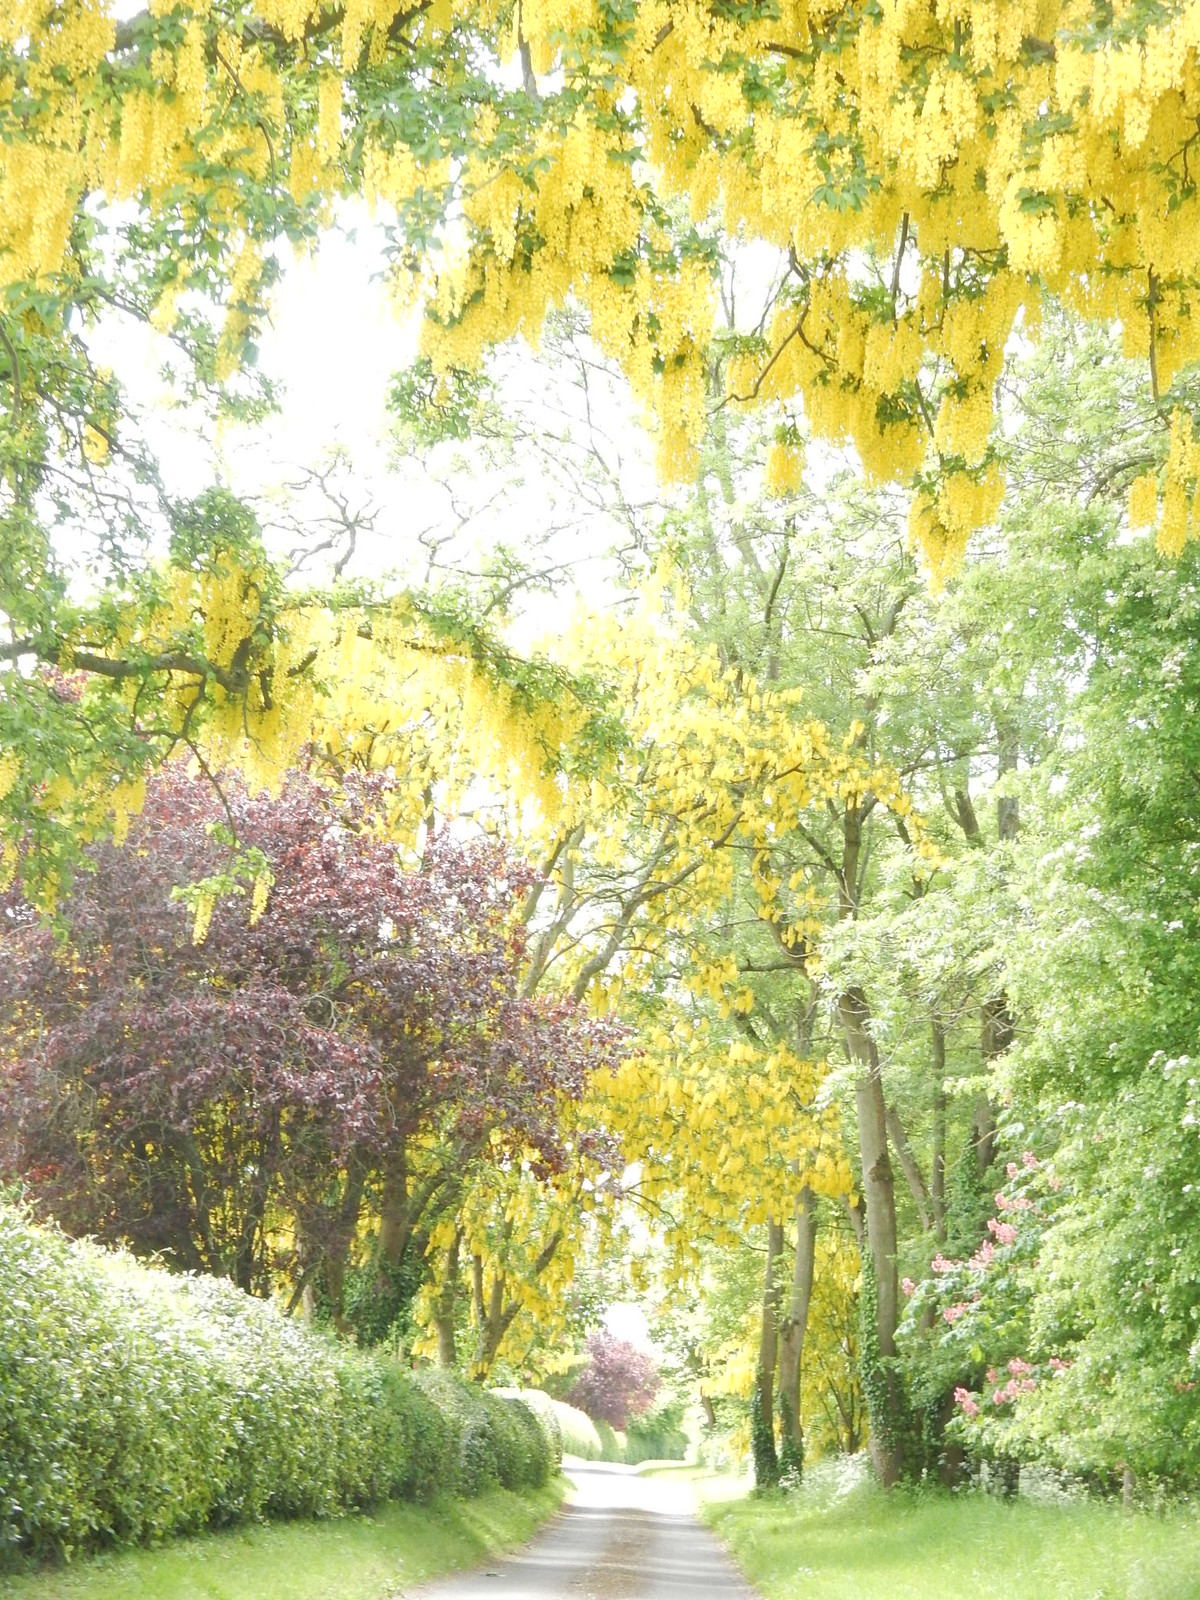 Laburnum lined lane near Britwell Priors, point 36. Whitchurch to Andover